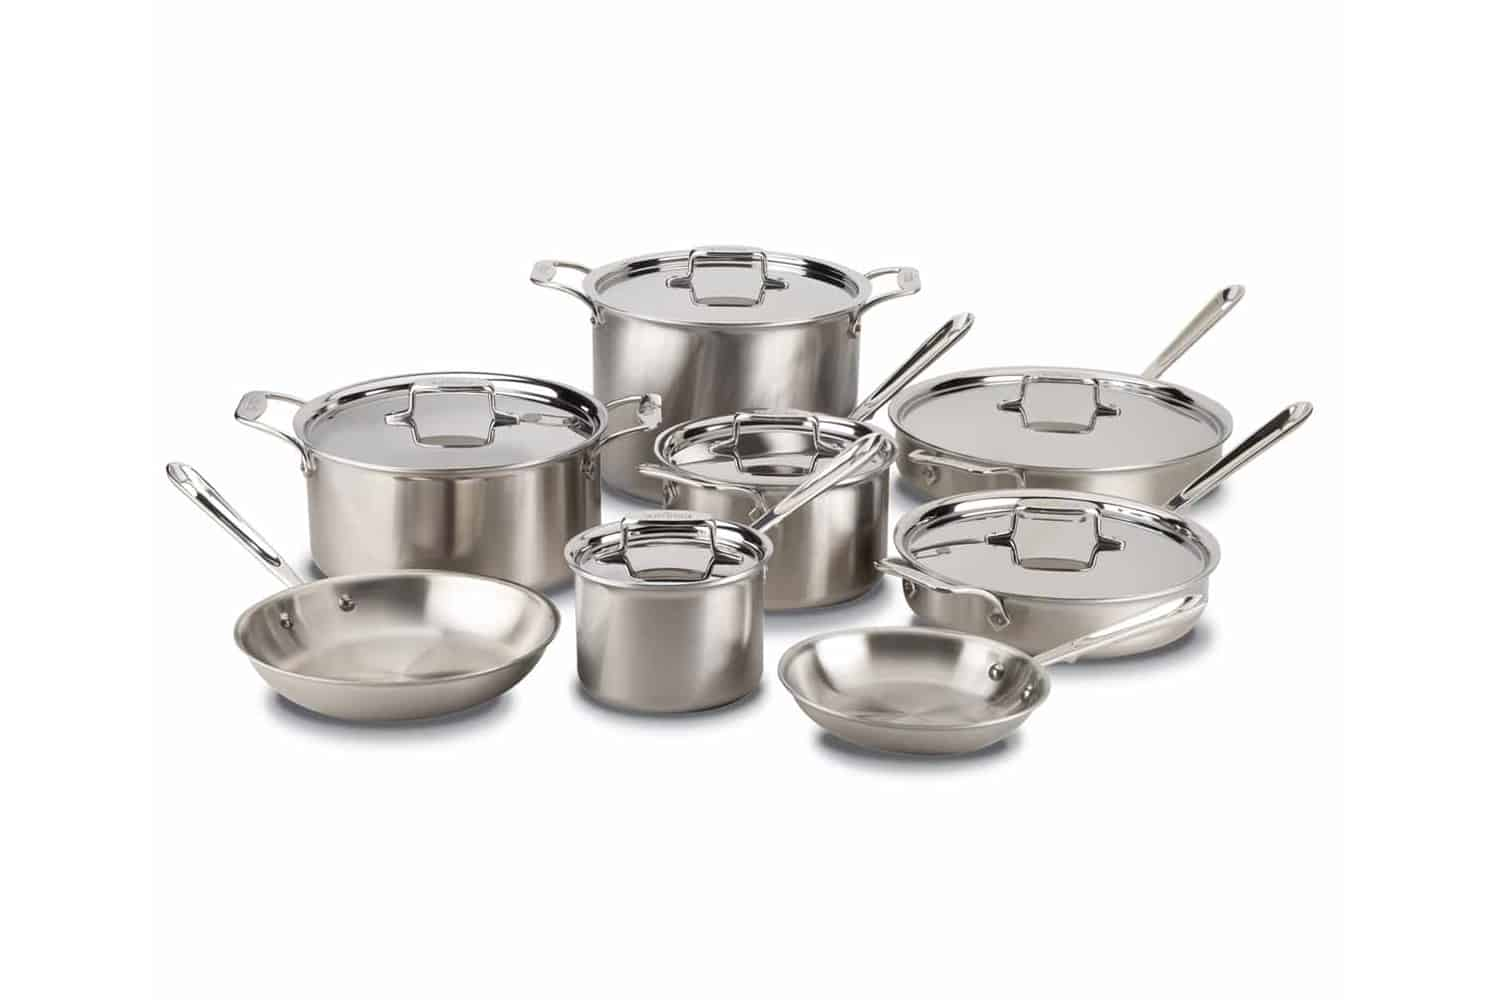 Cookware FAQ: What is difference between Tri-ply, 5-ply, and beyond?